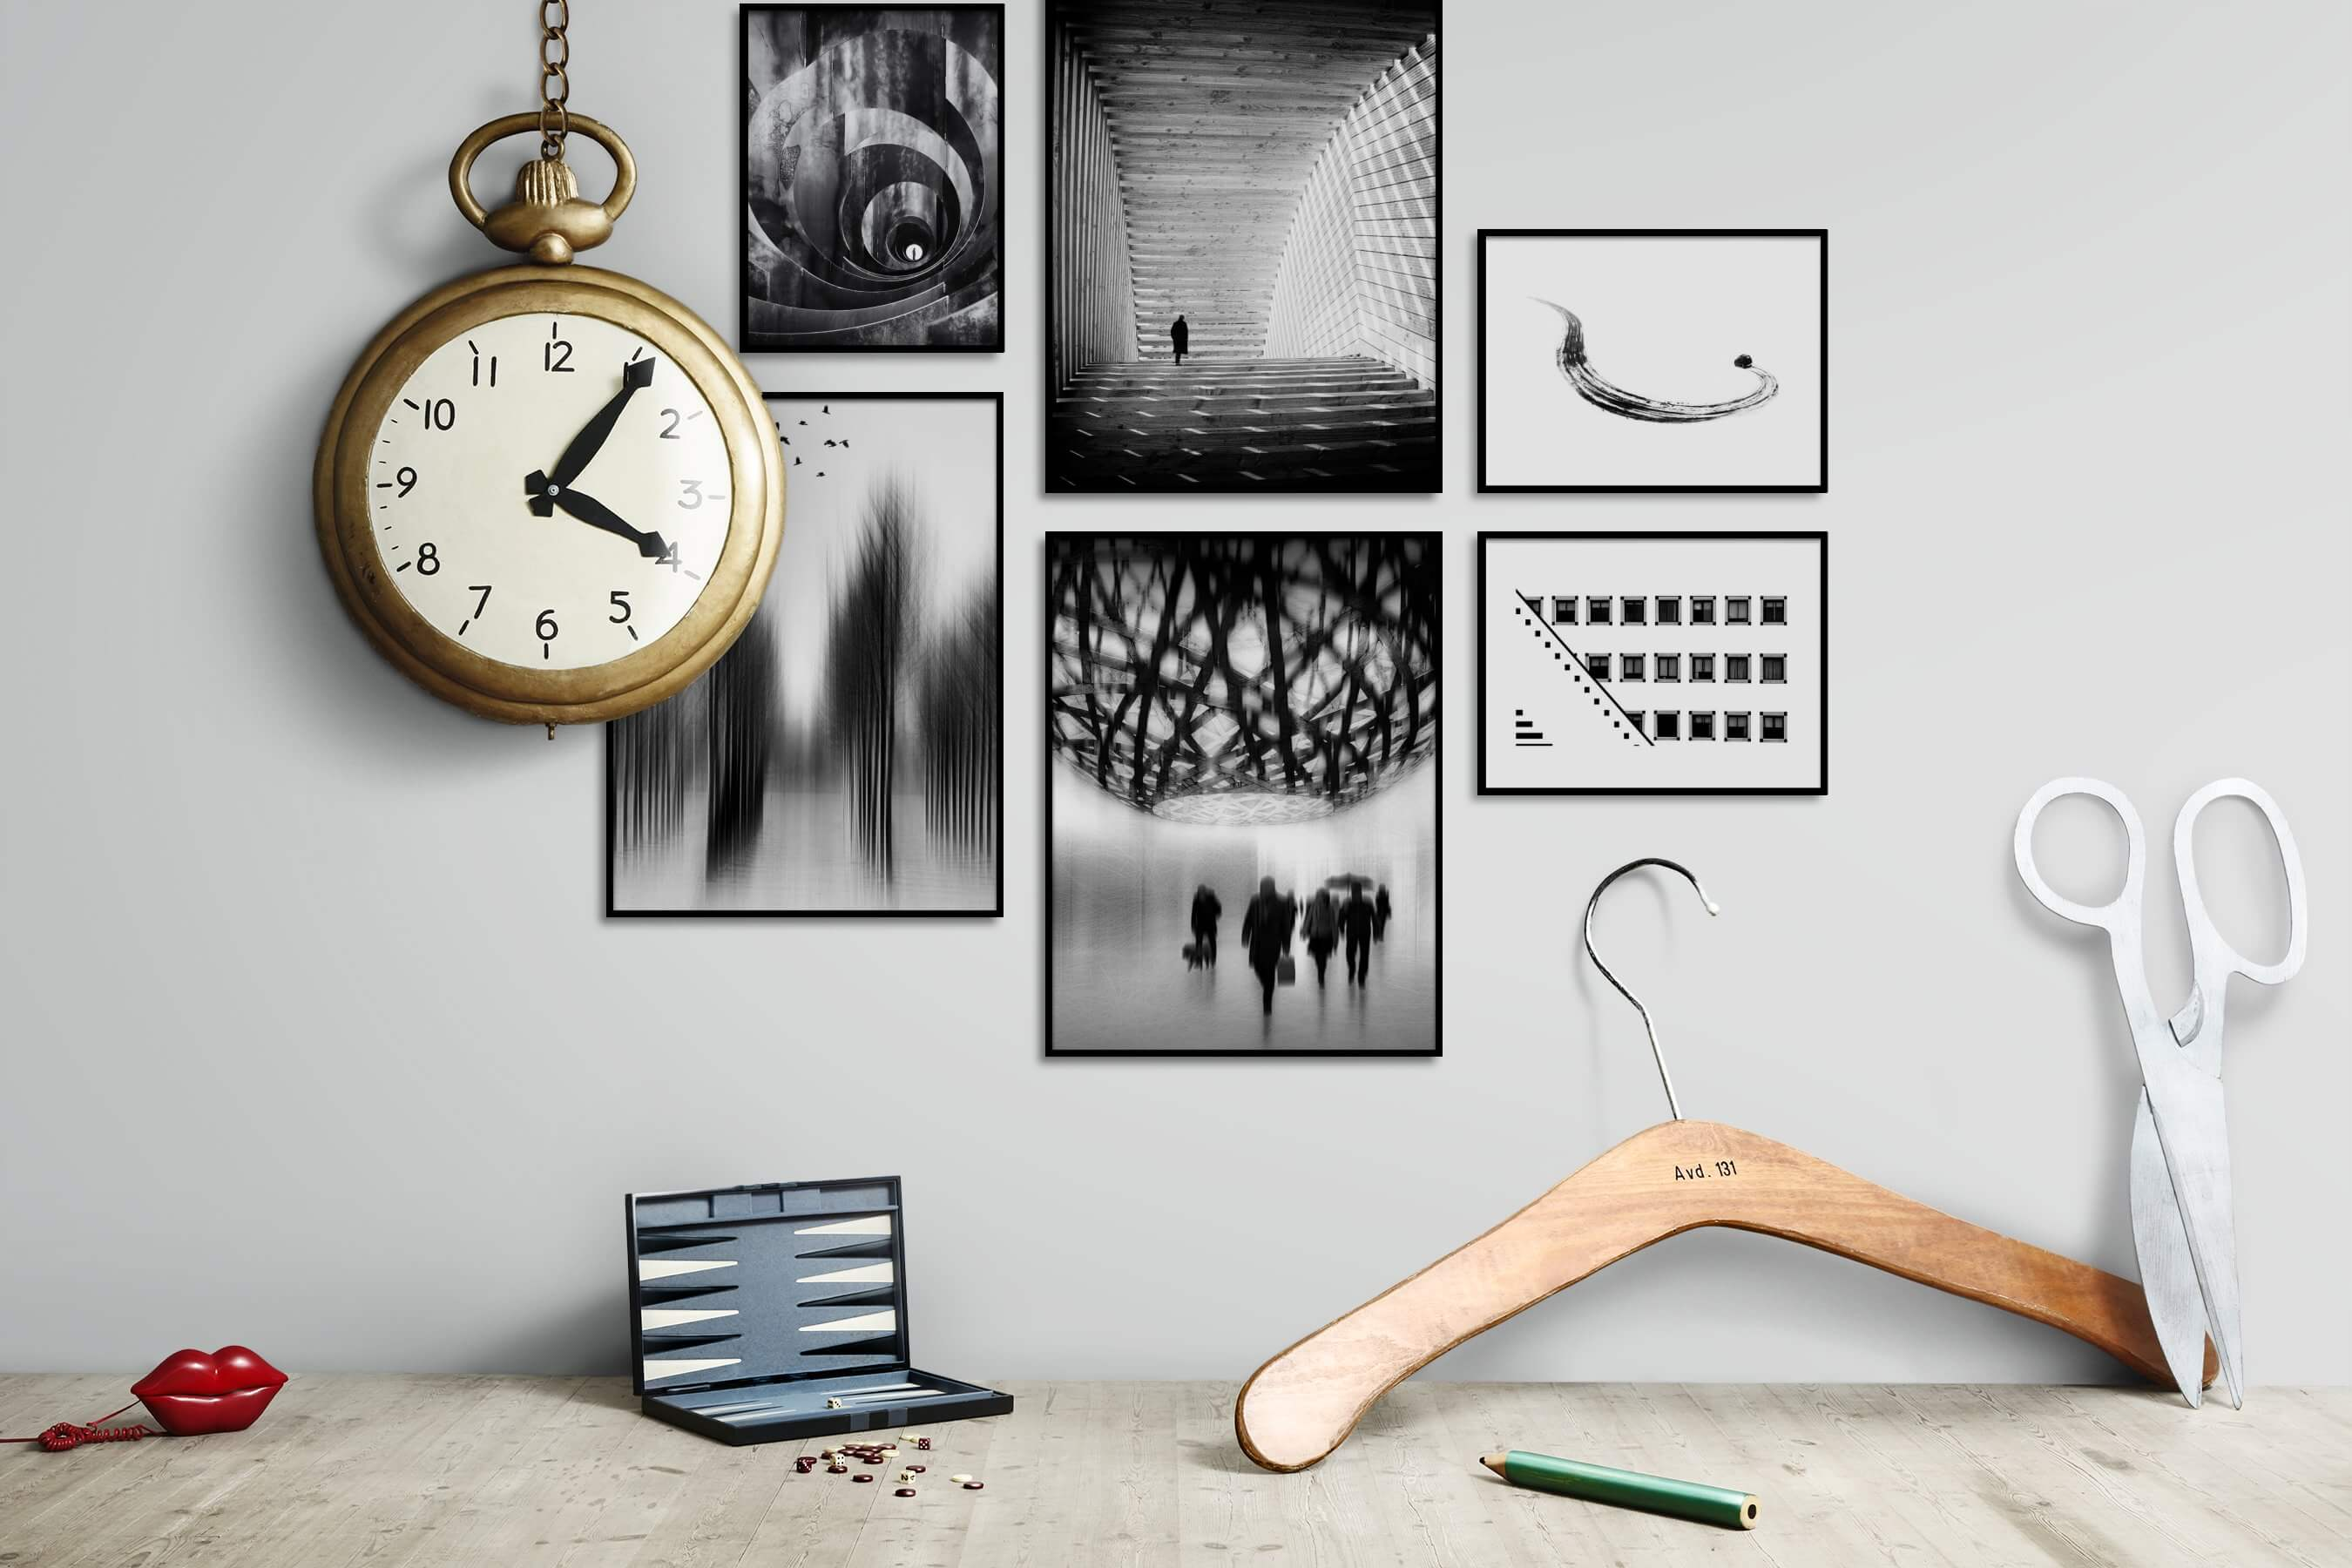 Gallery wall idea with six framed pictures arranged on a wall depicting Black & White, For the Maximalist, For the Moderate, Nature, Artsy, Bright Tones, For the Minimalist, and Country Life